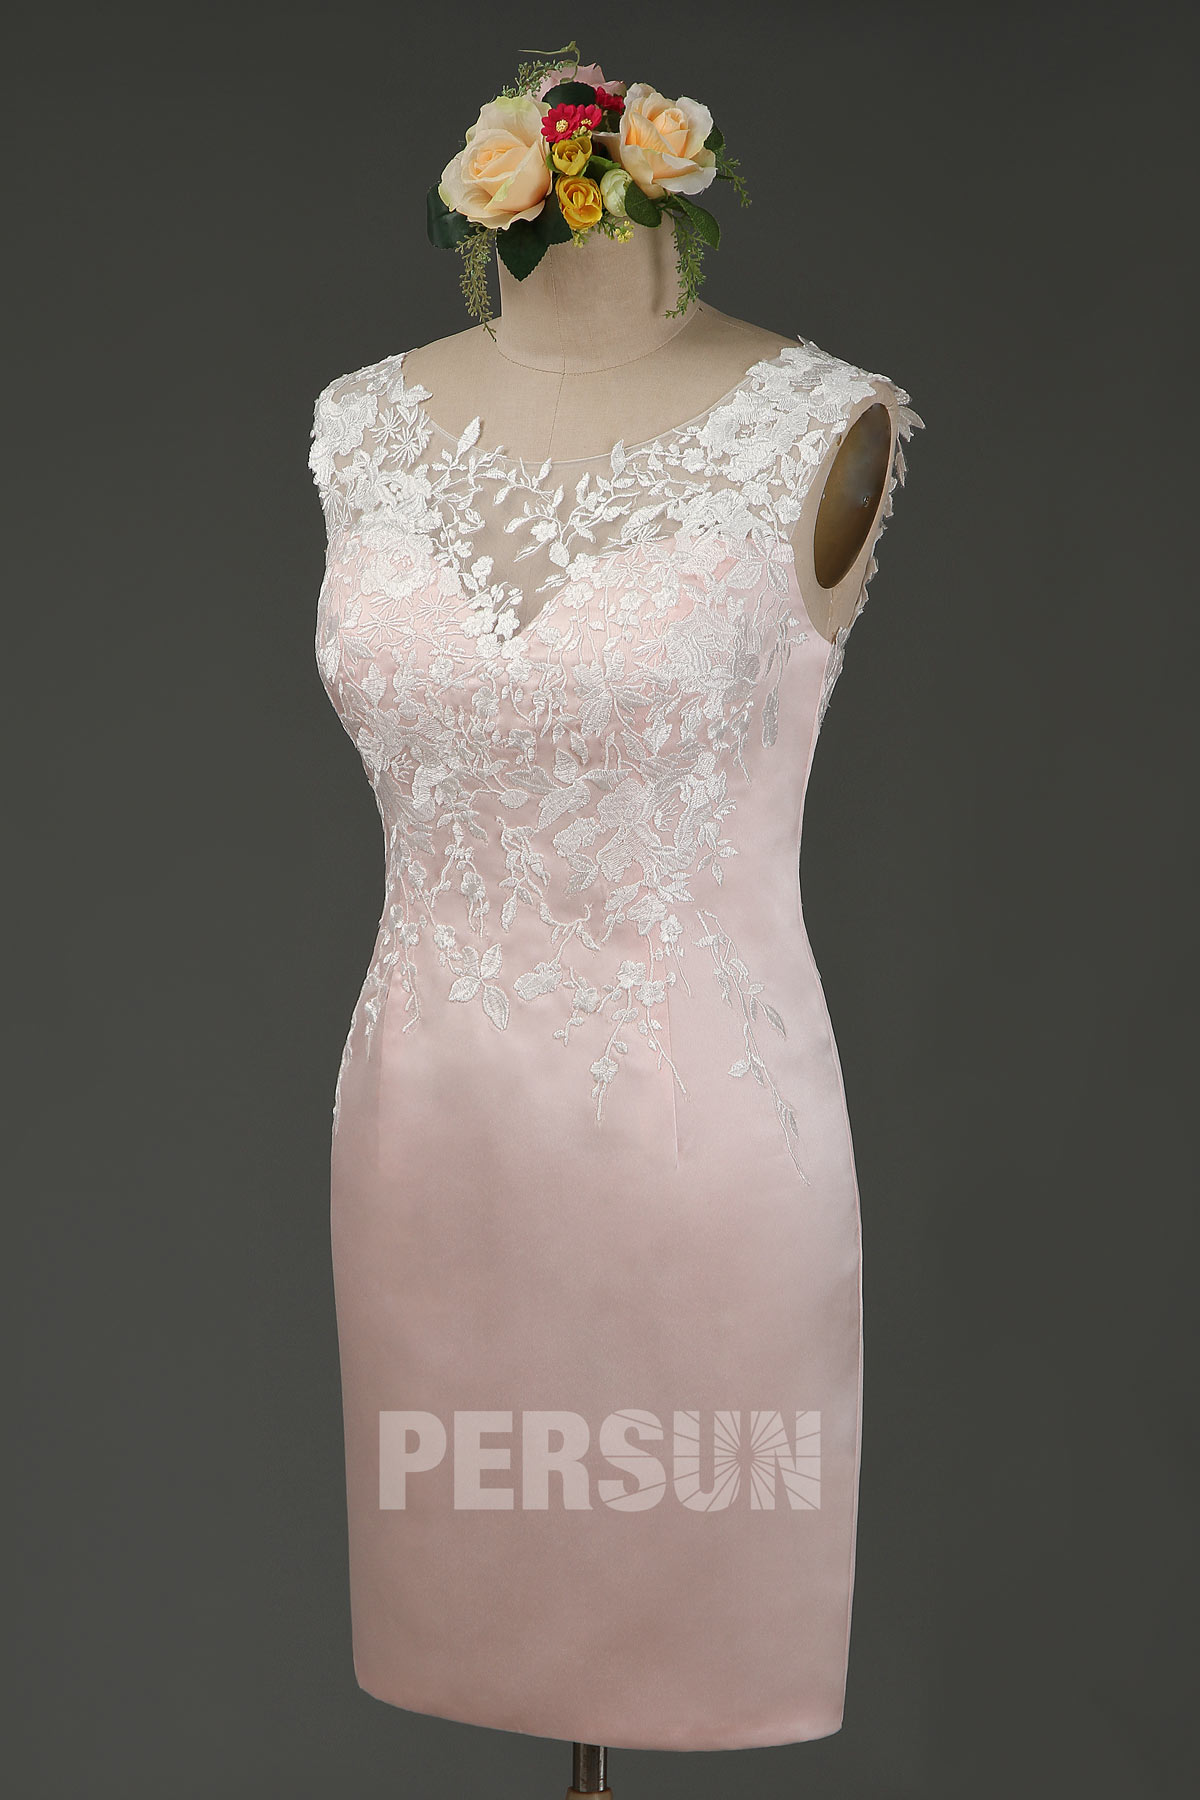 robe de cocktail fourreau courte rose poudré col illusion en dentelle appliquée